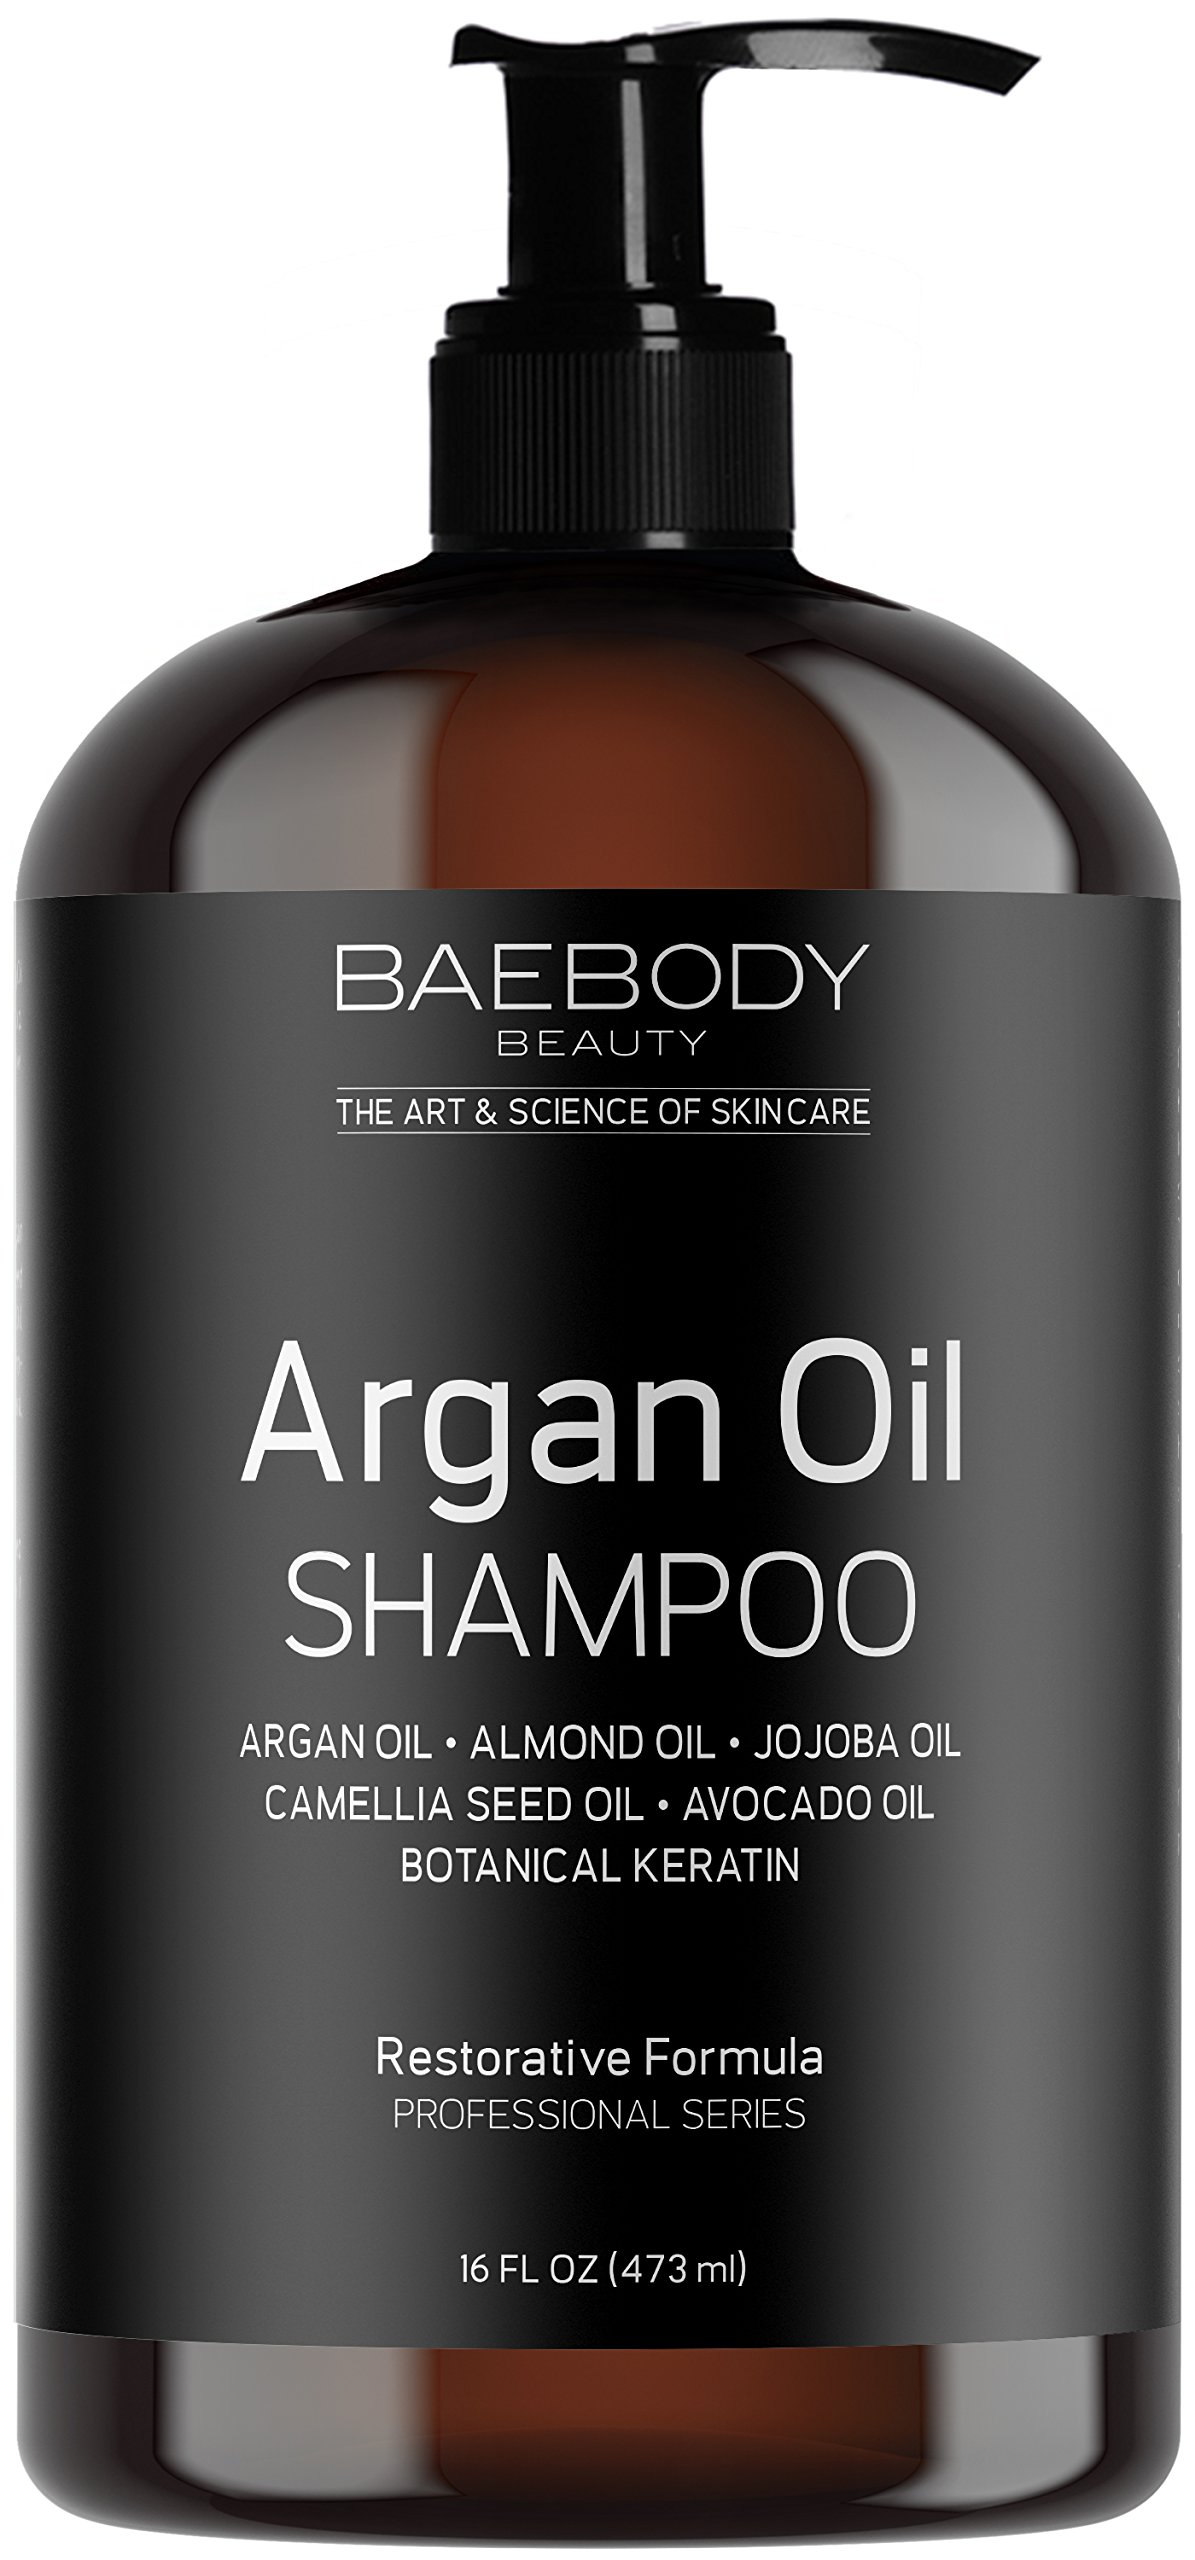 Baebody Moroccan Argan Oil Shampoo 16 Oz - Sulfate Free - Volumizing & Moisturizing, Gentle on Curly & Color Treated Hair, for Men & Women. Infused with Keratin.